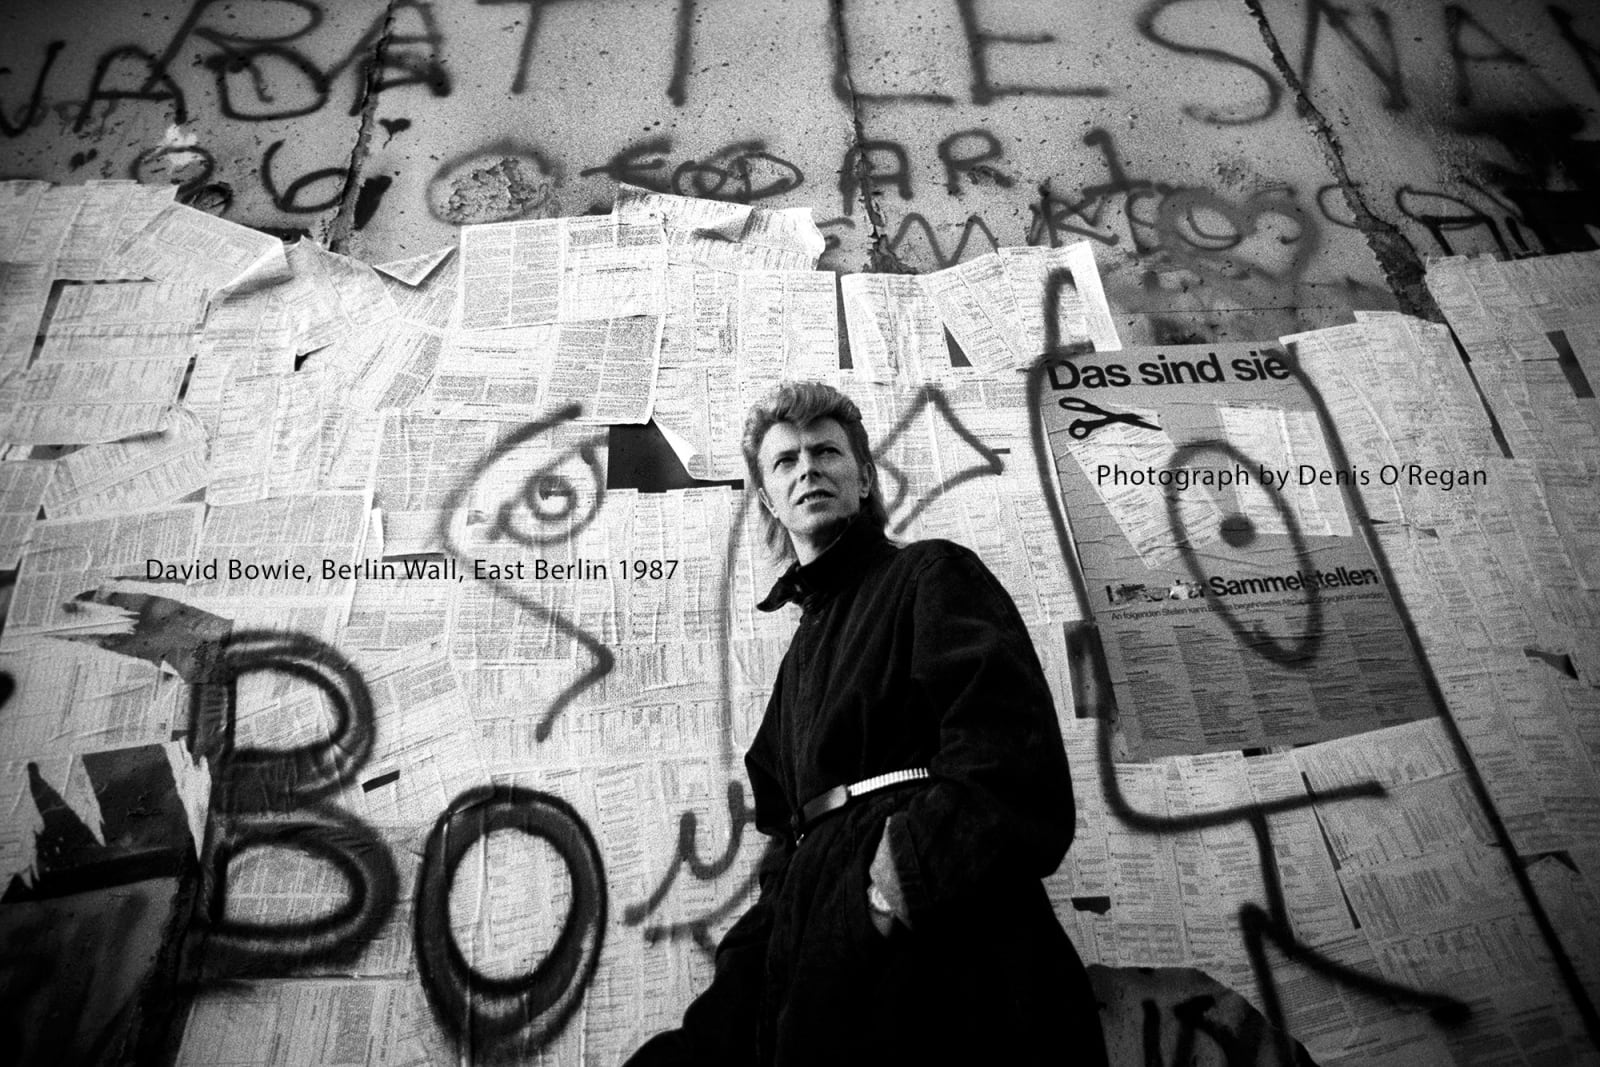 DAVID BOWIE, David Bowie (East) Berlin Wall, 1987